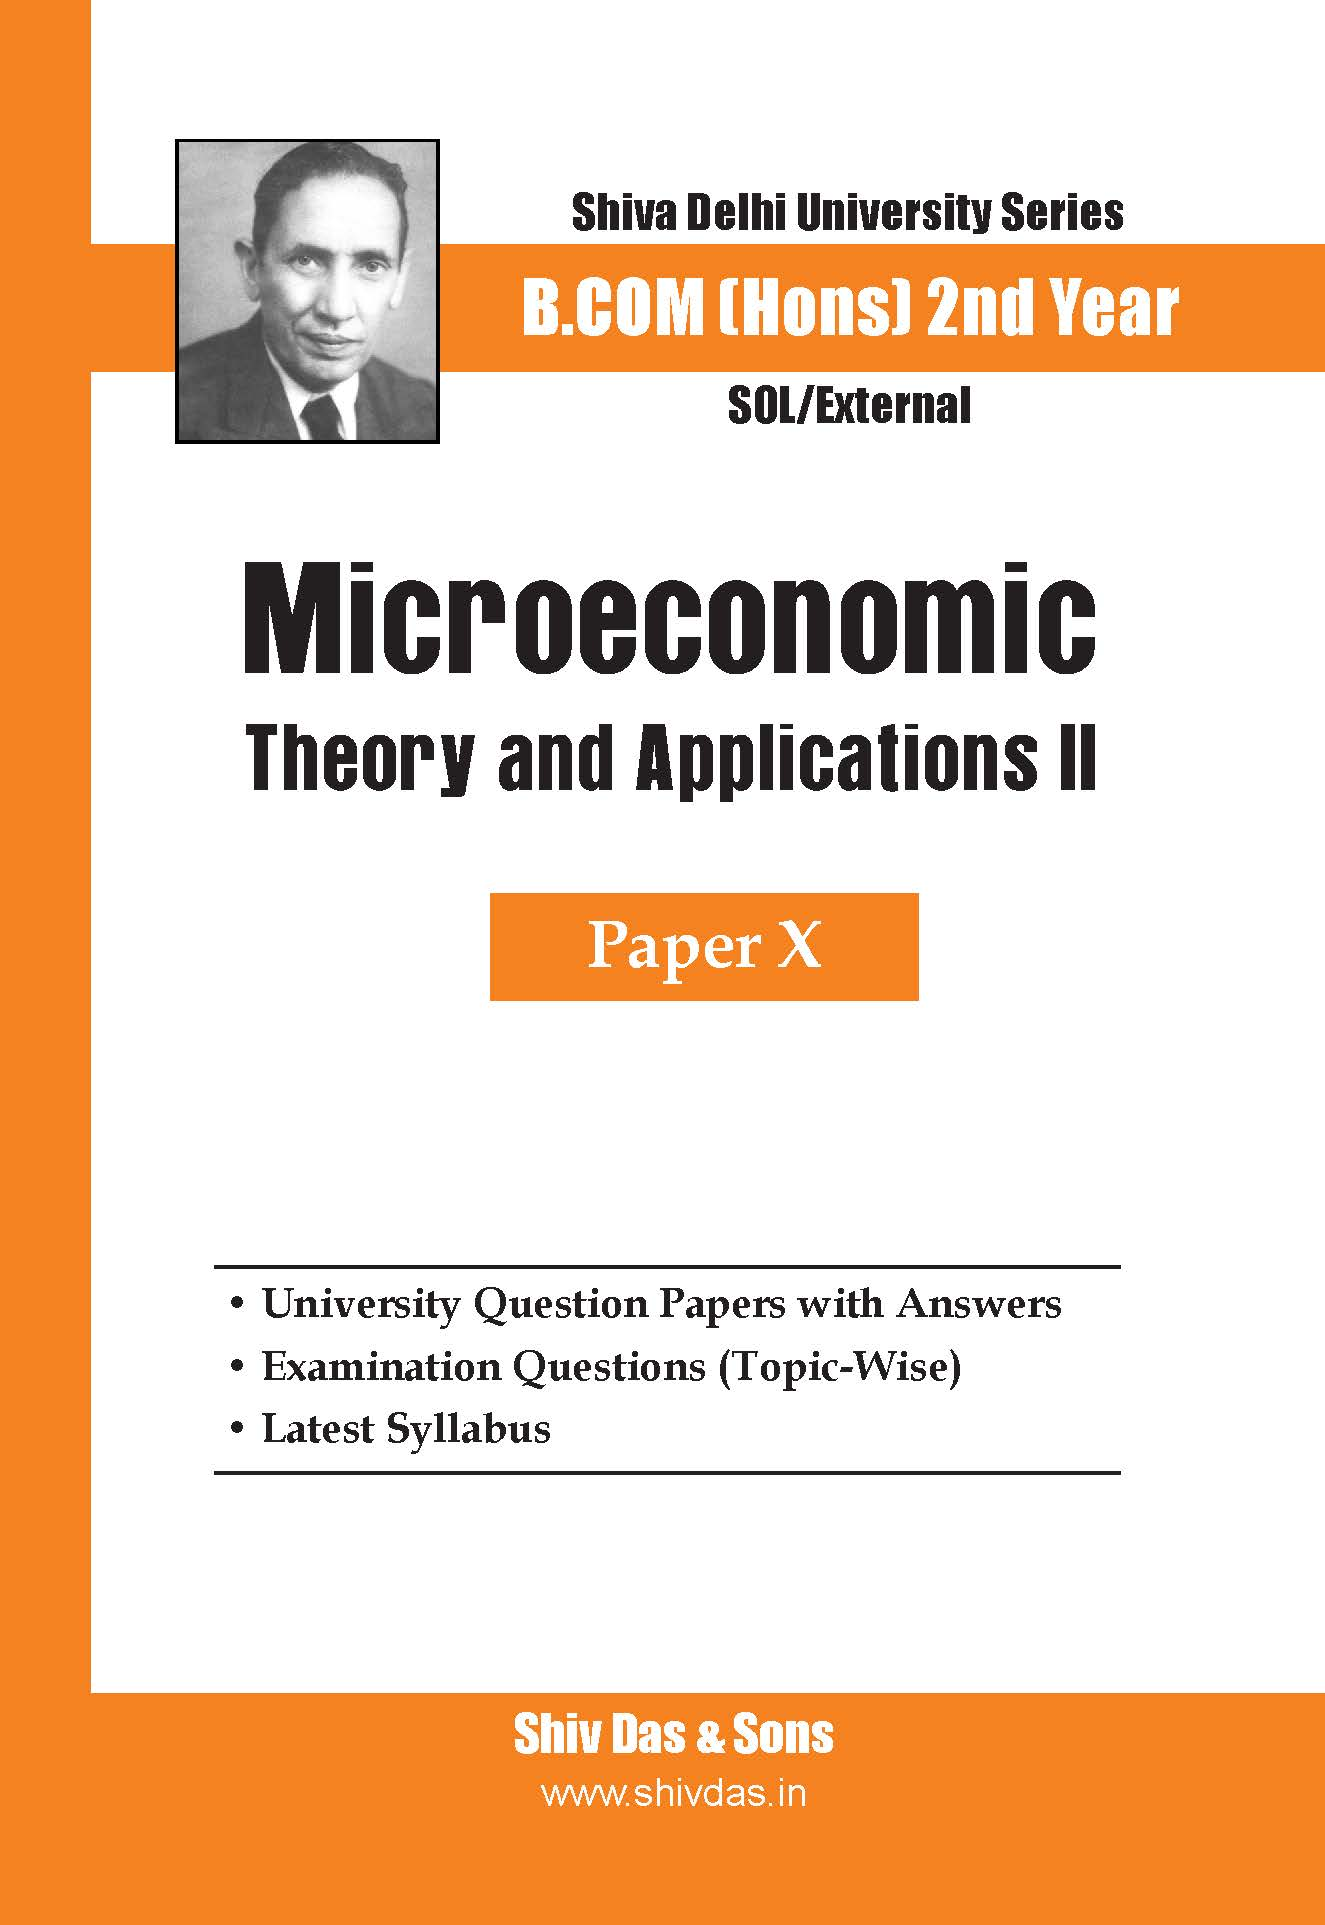 Microeconomics Theory and Applicatons - II for B.Com Hons SOL/External 2nd Year